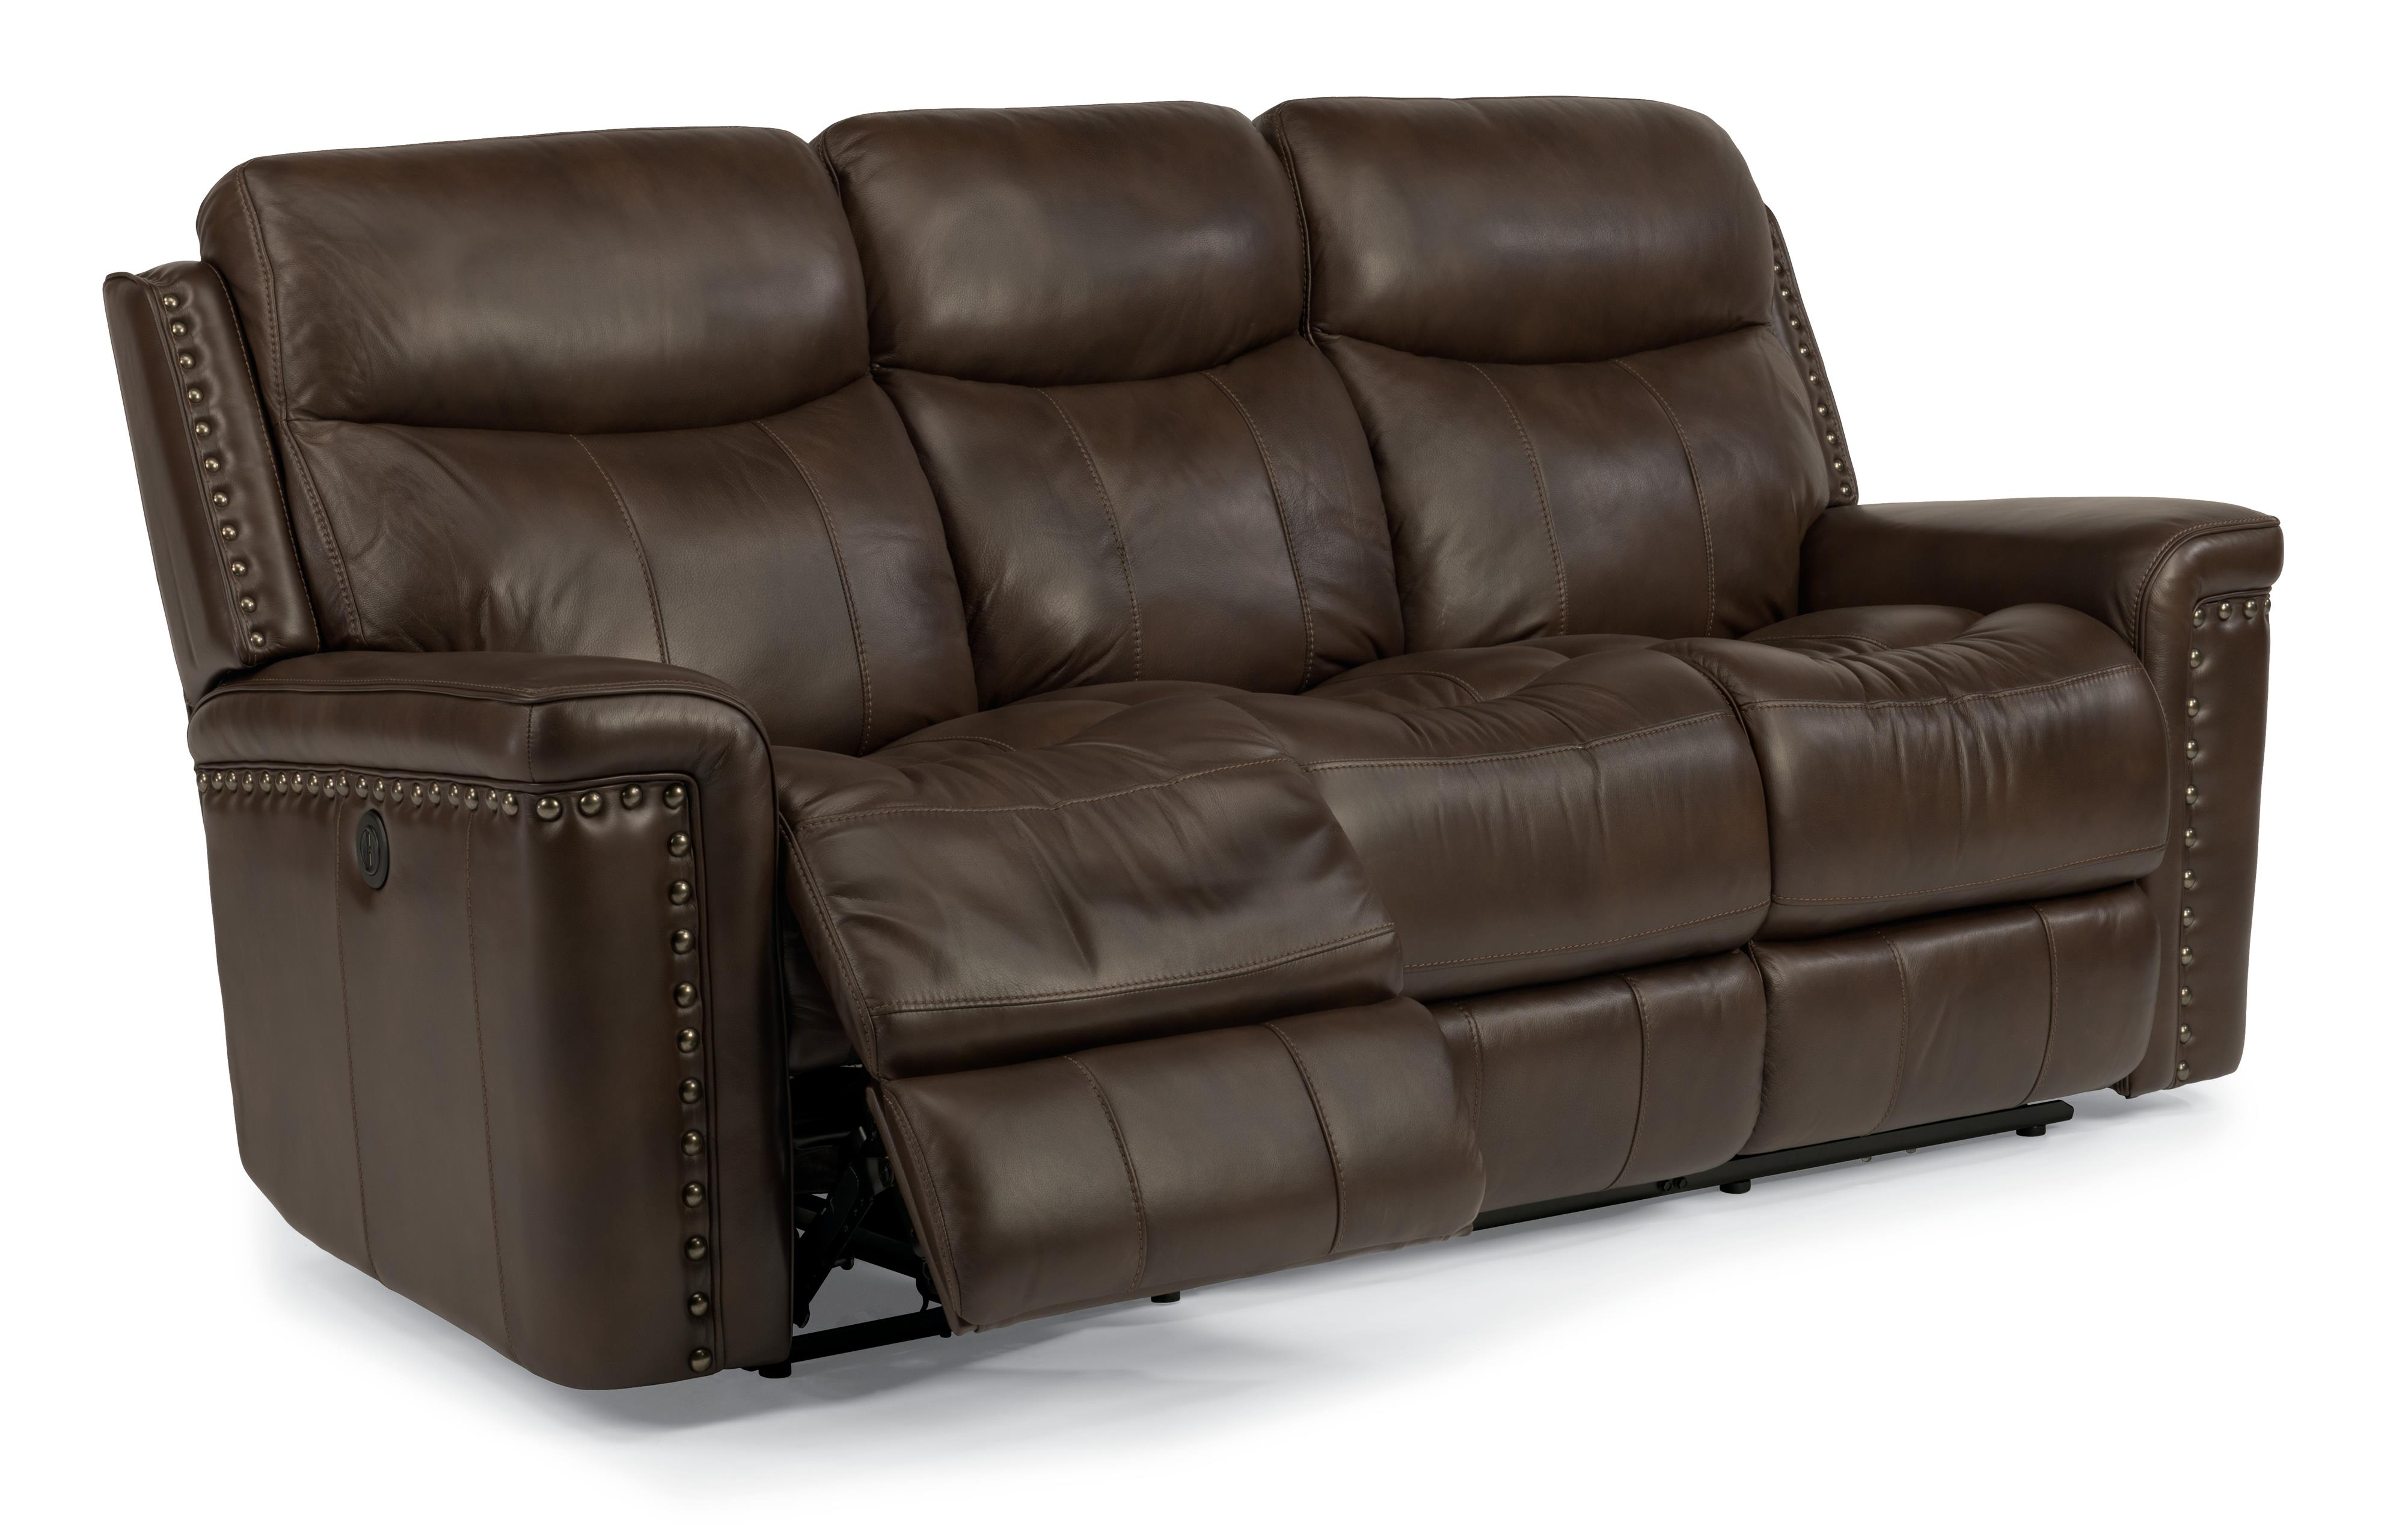 Flexsteel Laudes Grover Reclining Sofa Item Number 1339 62p 014